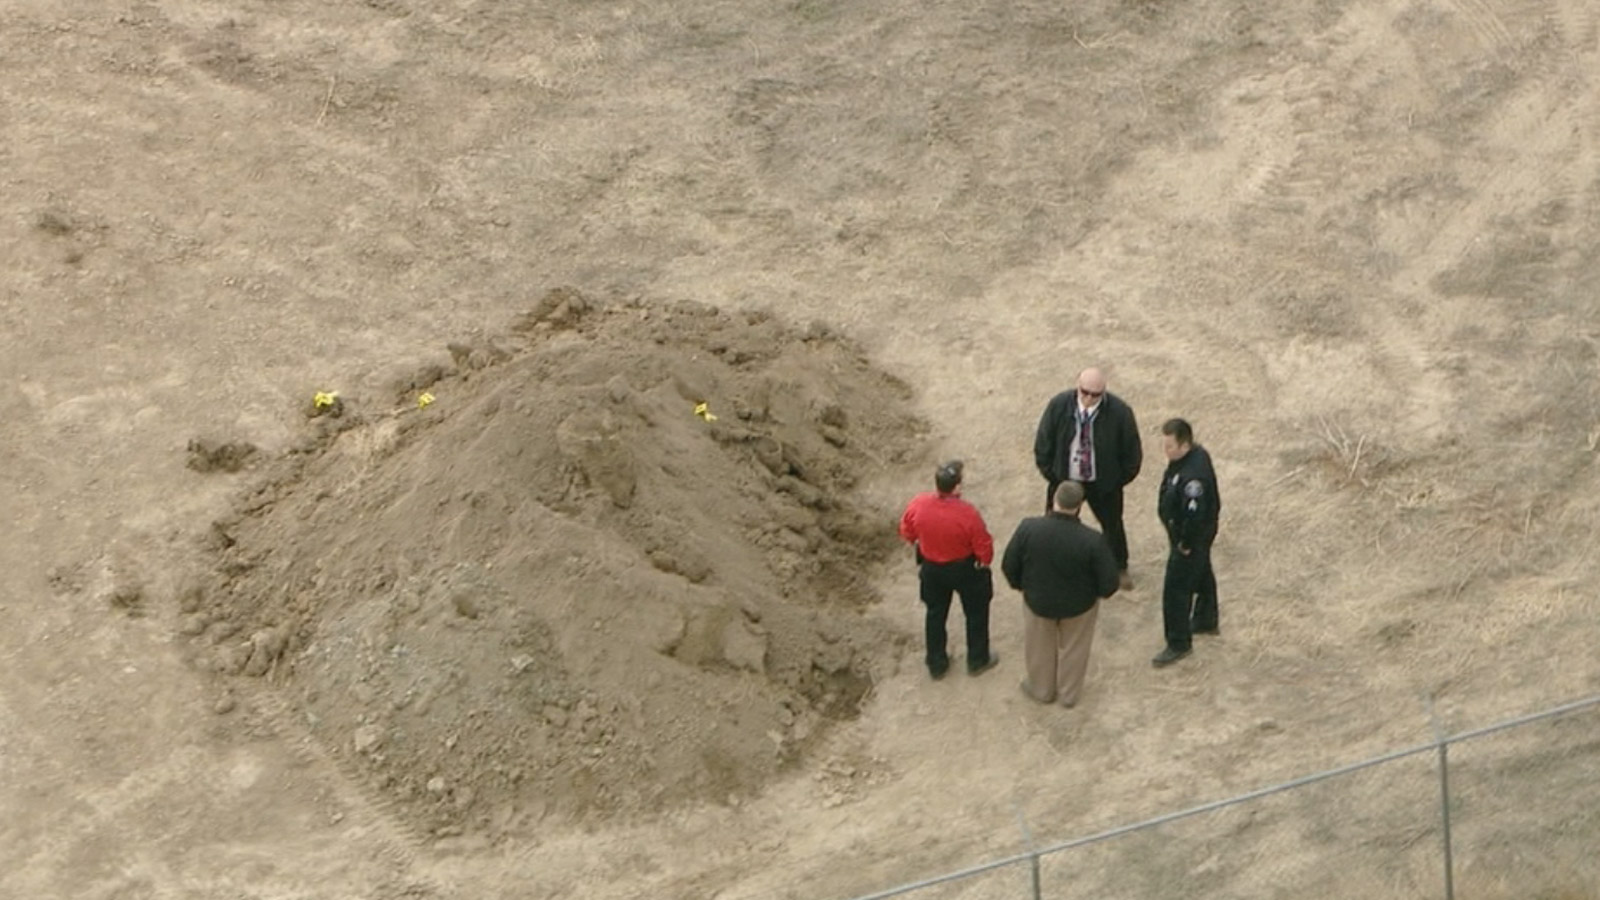 Copter4 flew over the investigation after human remains were discovered near the Front Range Airport on Thursday (credit: CBS)